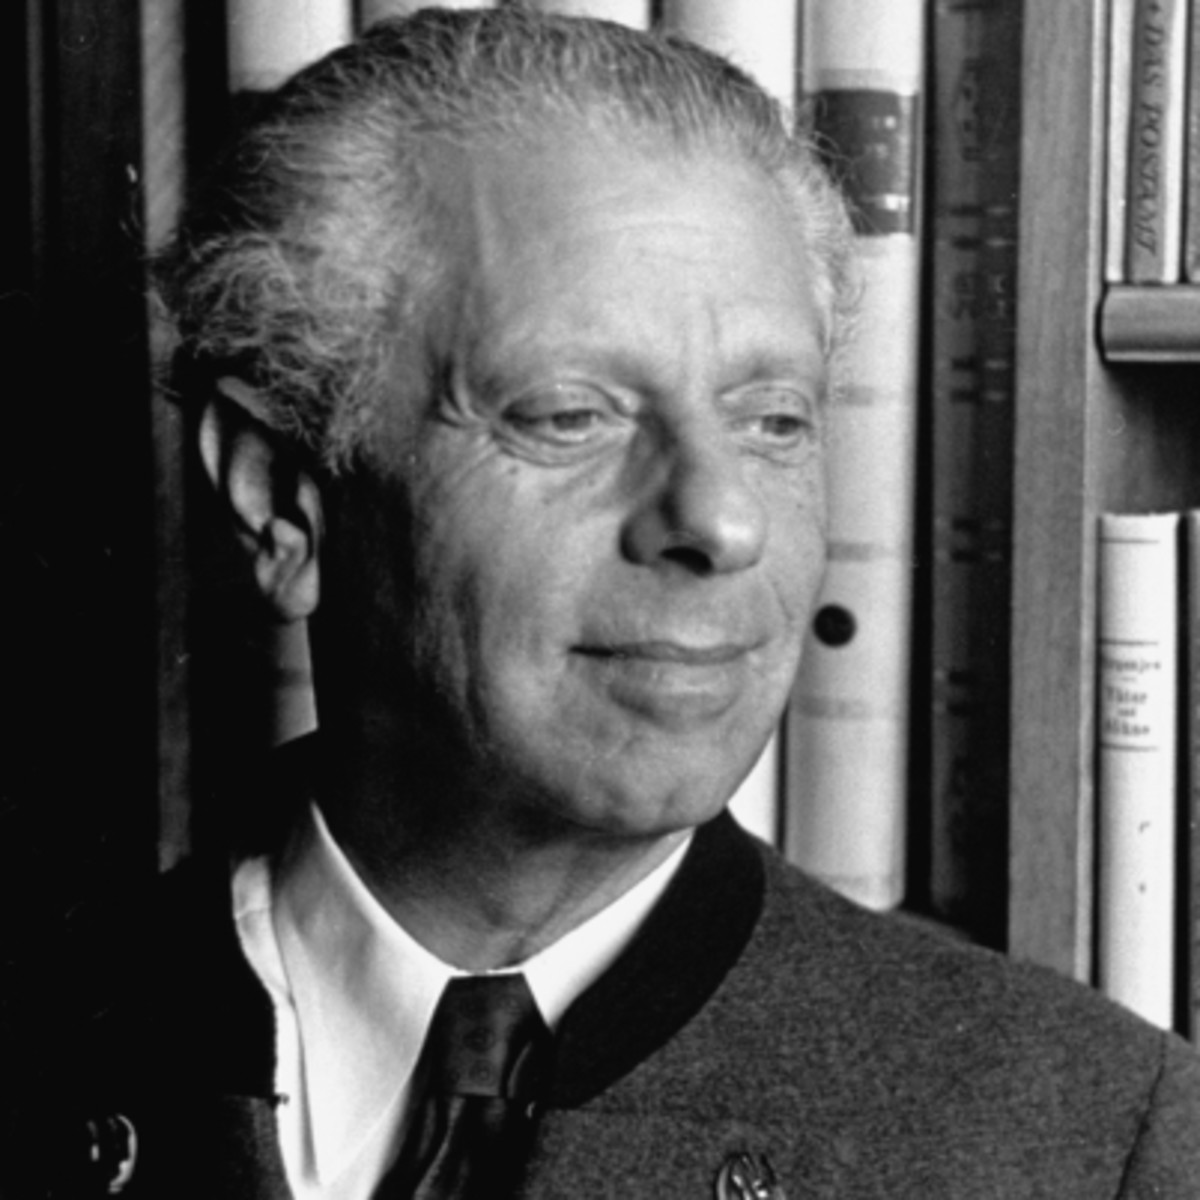 life and work of a director max reinhardt Reinhardt (goldmann), maxreinhardt (goldmann), max (1873–1943), stage producer and director reinhardt, a leading force in the theater during the first part of the 20th century, was born in baden, near vienna.